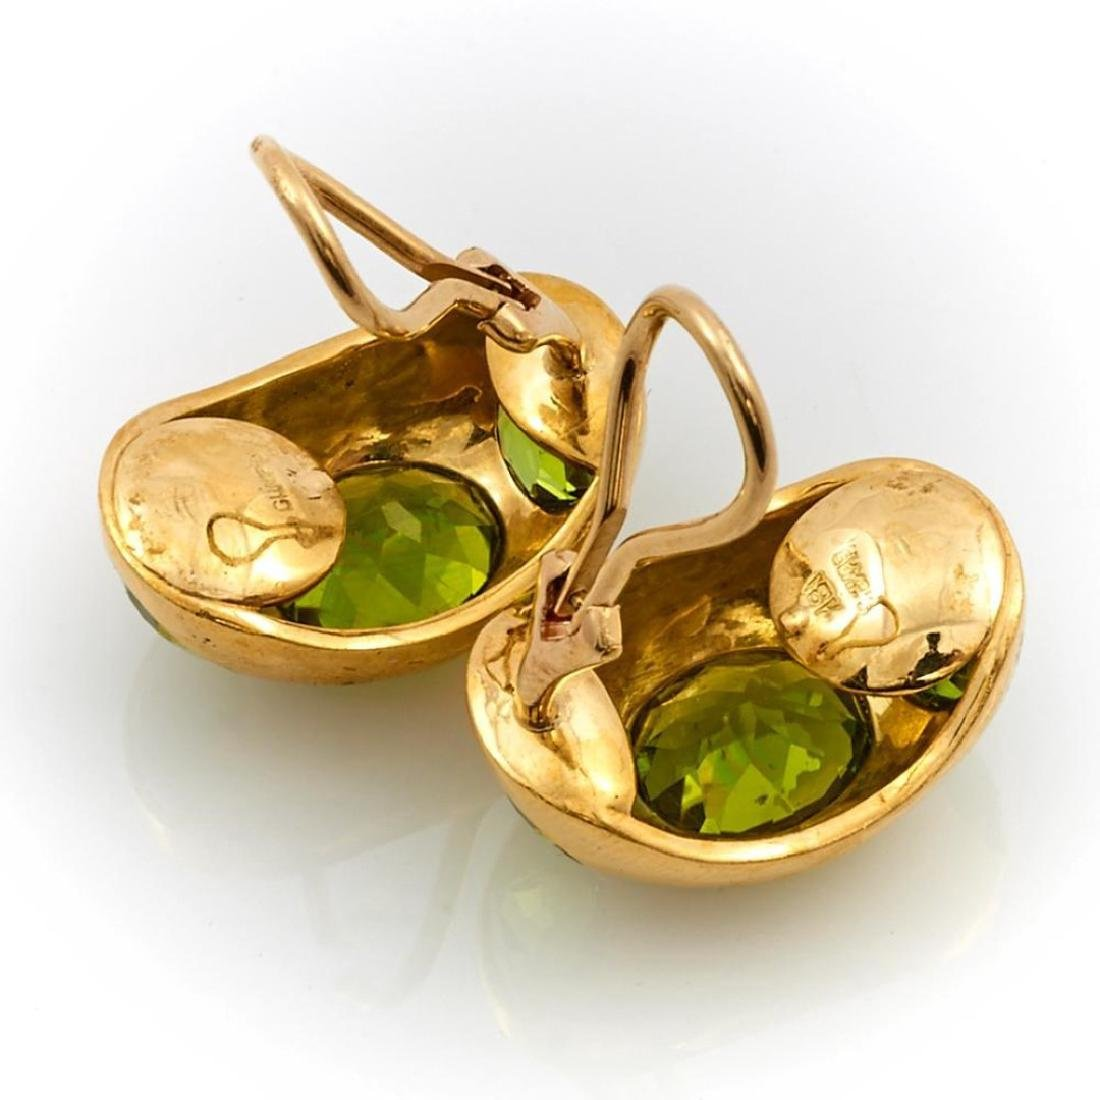 Pair of peridot and 18k gold clip earrings, Gumps - 2